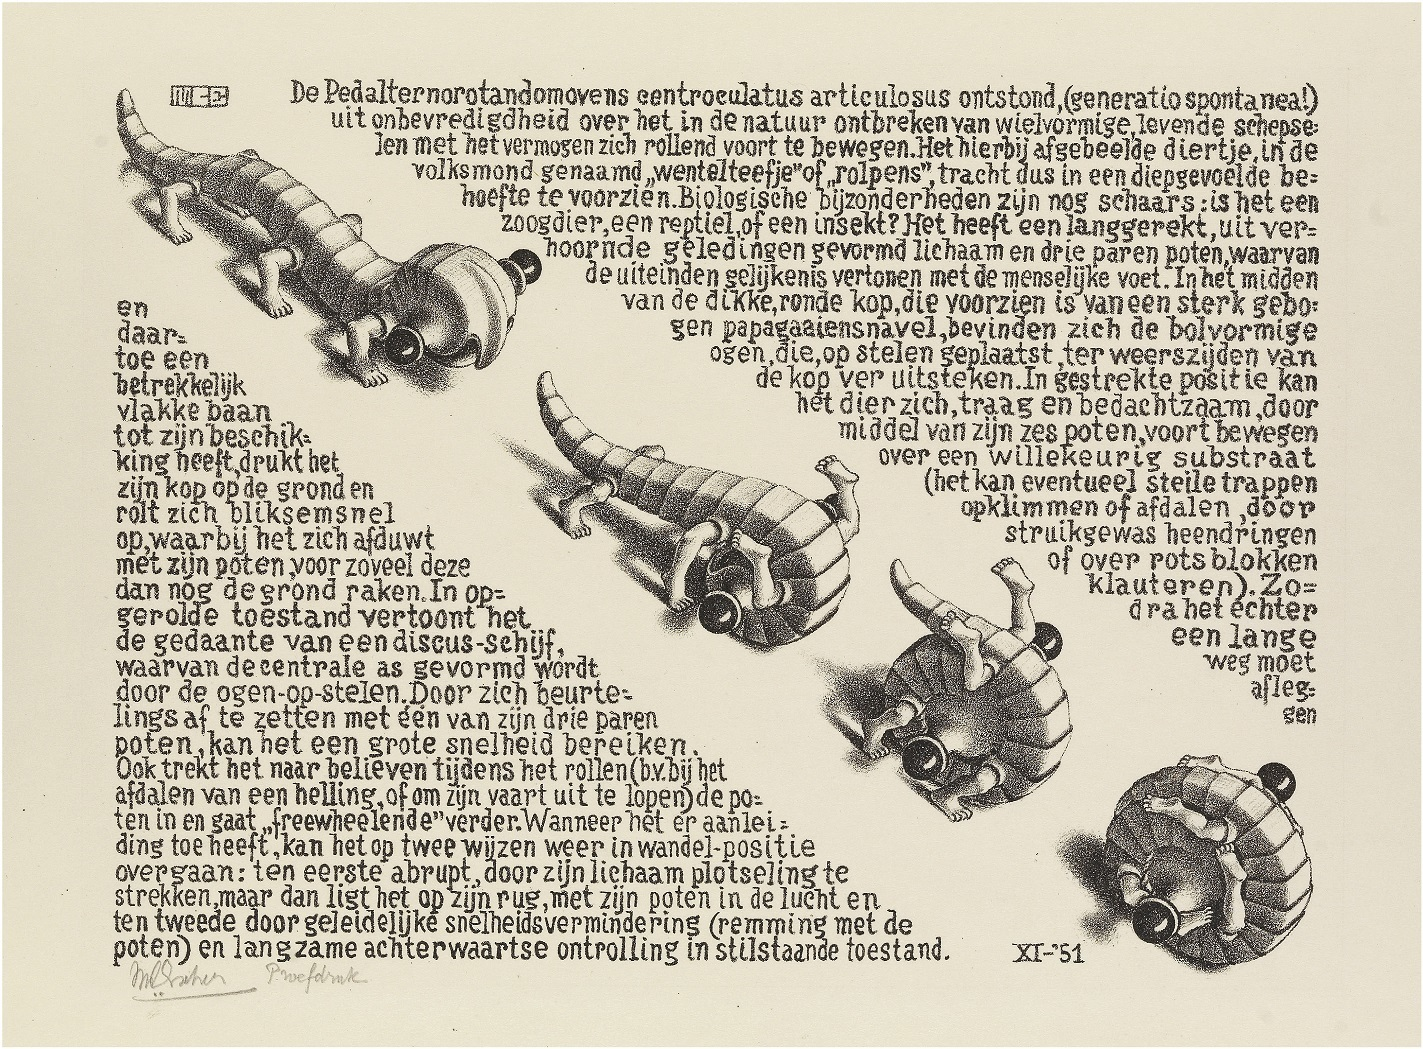 《でんぐりでんぐり》 1951年 All M.C. Escher works © The M.C. Escher Company, The Netherlands. All rights reserved.